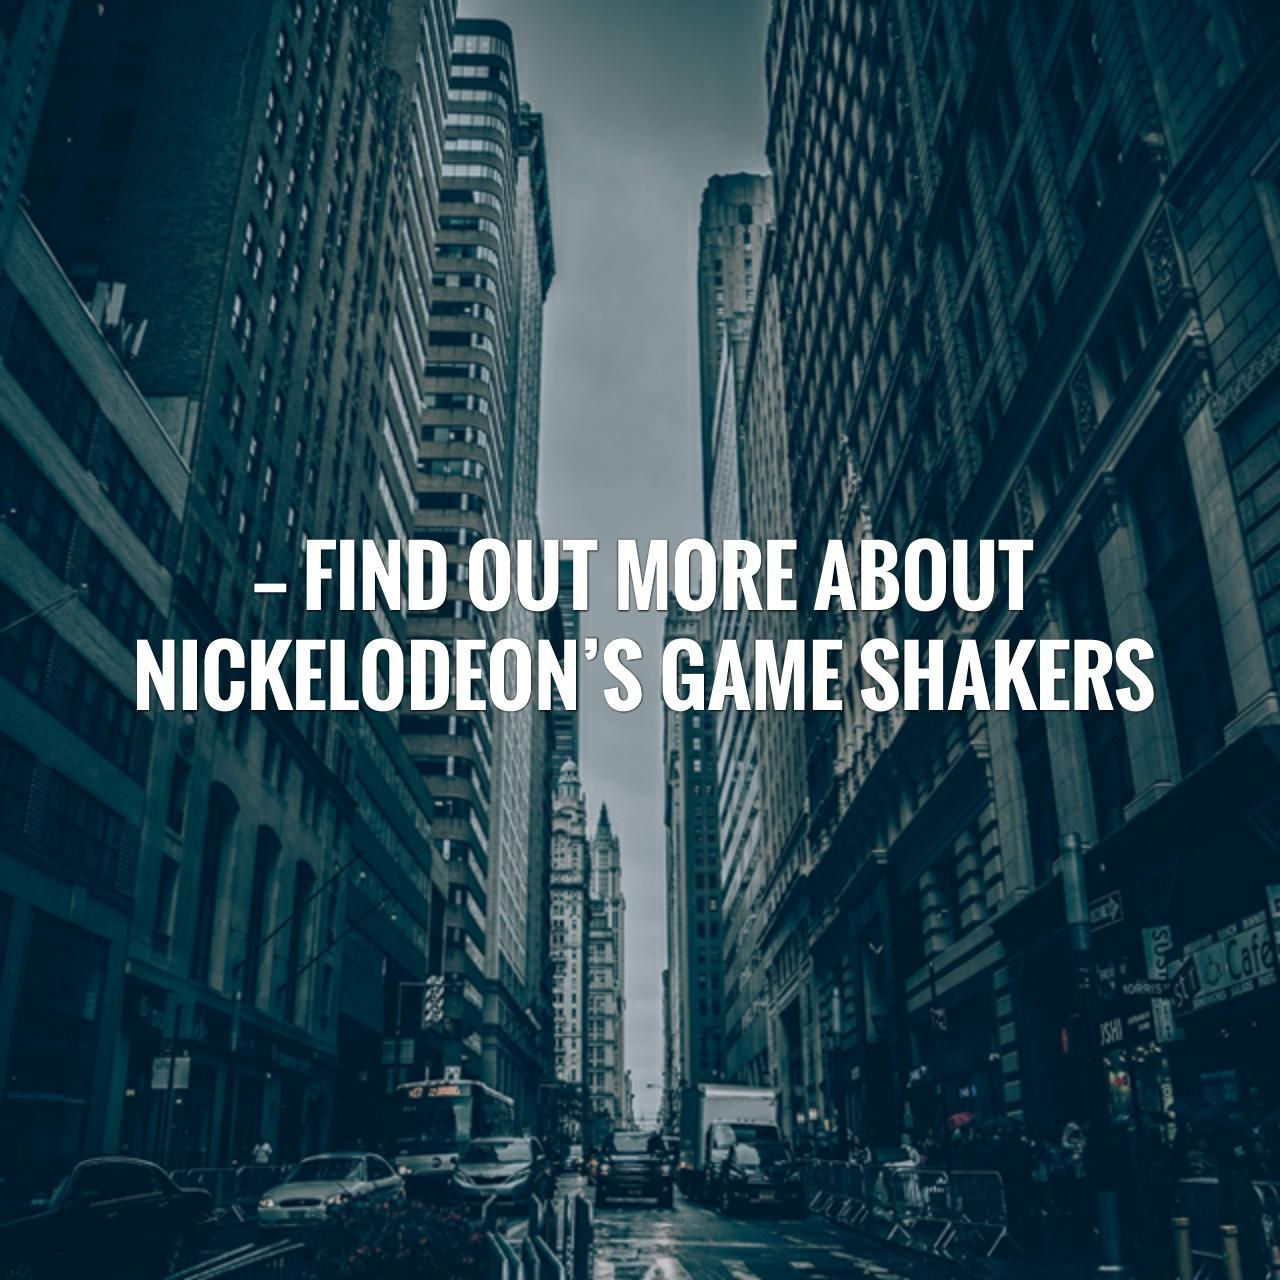 Find out more about Nickelodeon's Game Shakers & Henry